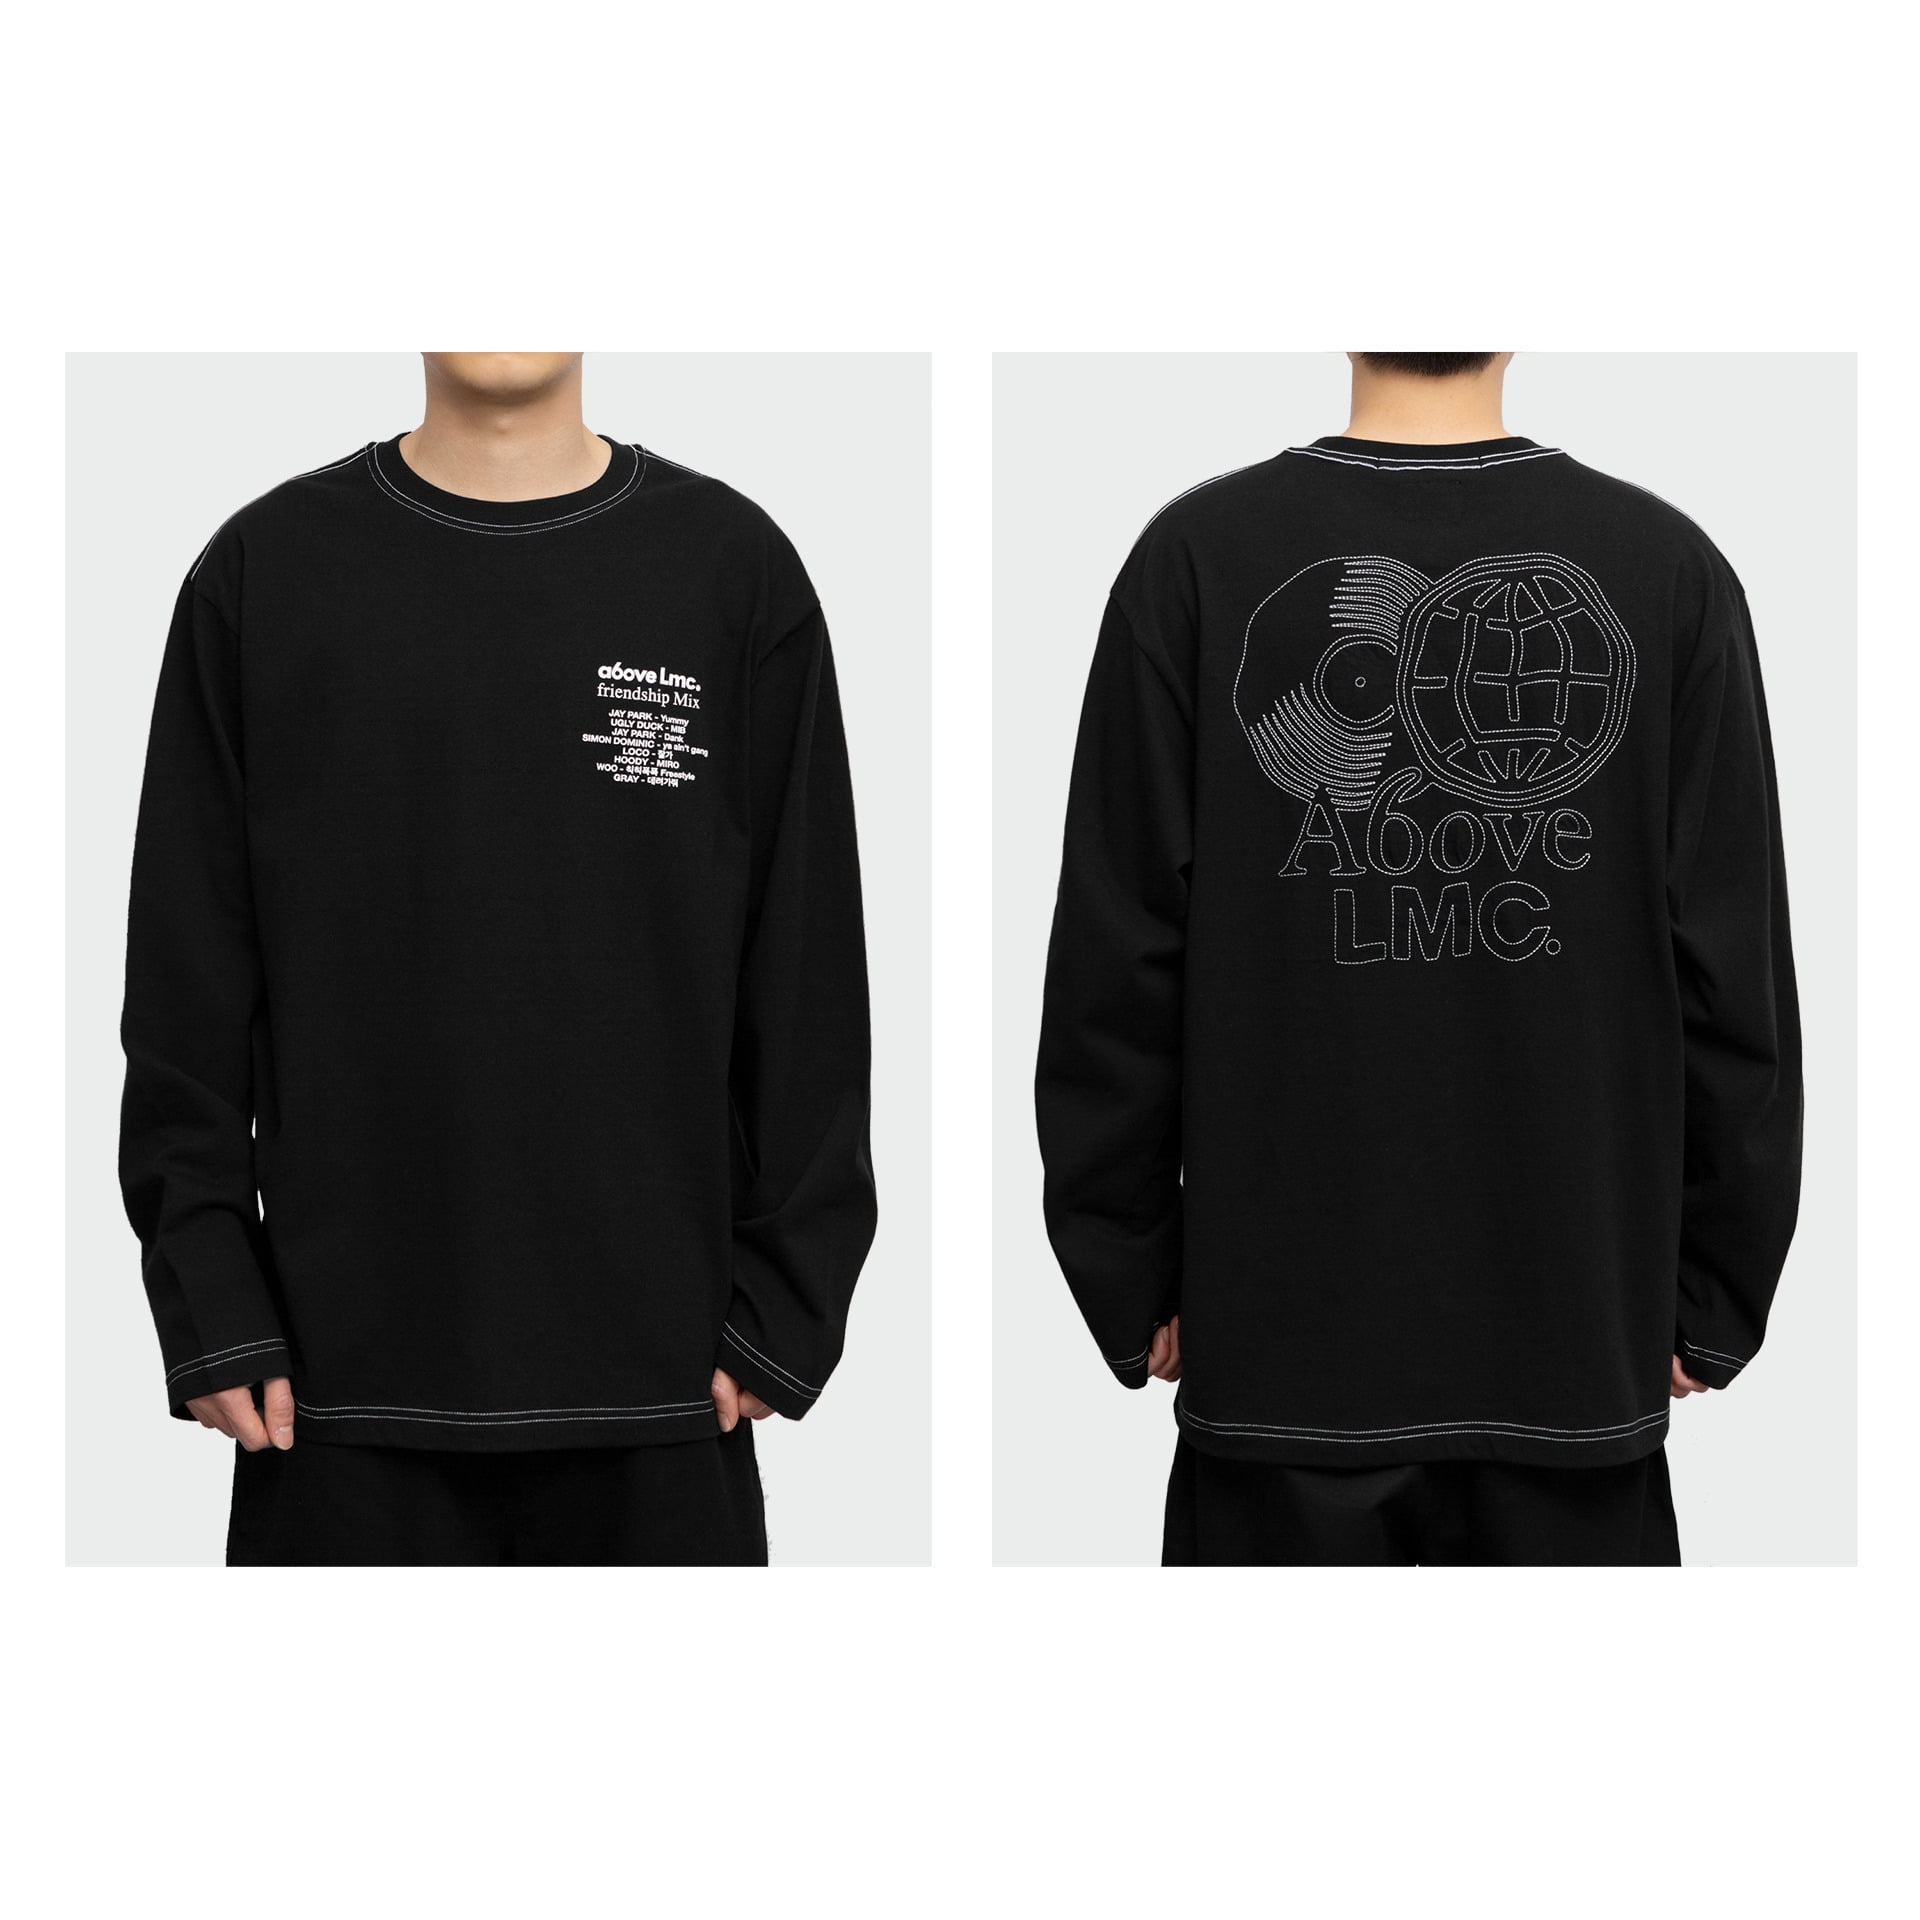 layer-LMC X A6OVE FRIENDSHIP MIX LONG SLV TEE black♡韓國男裝上衣